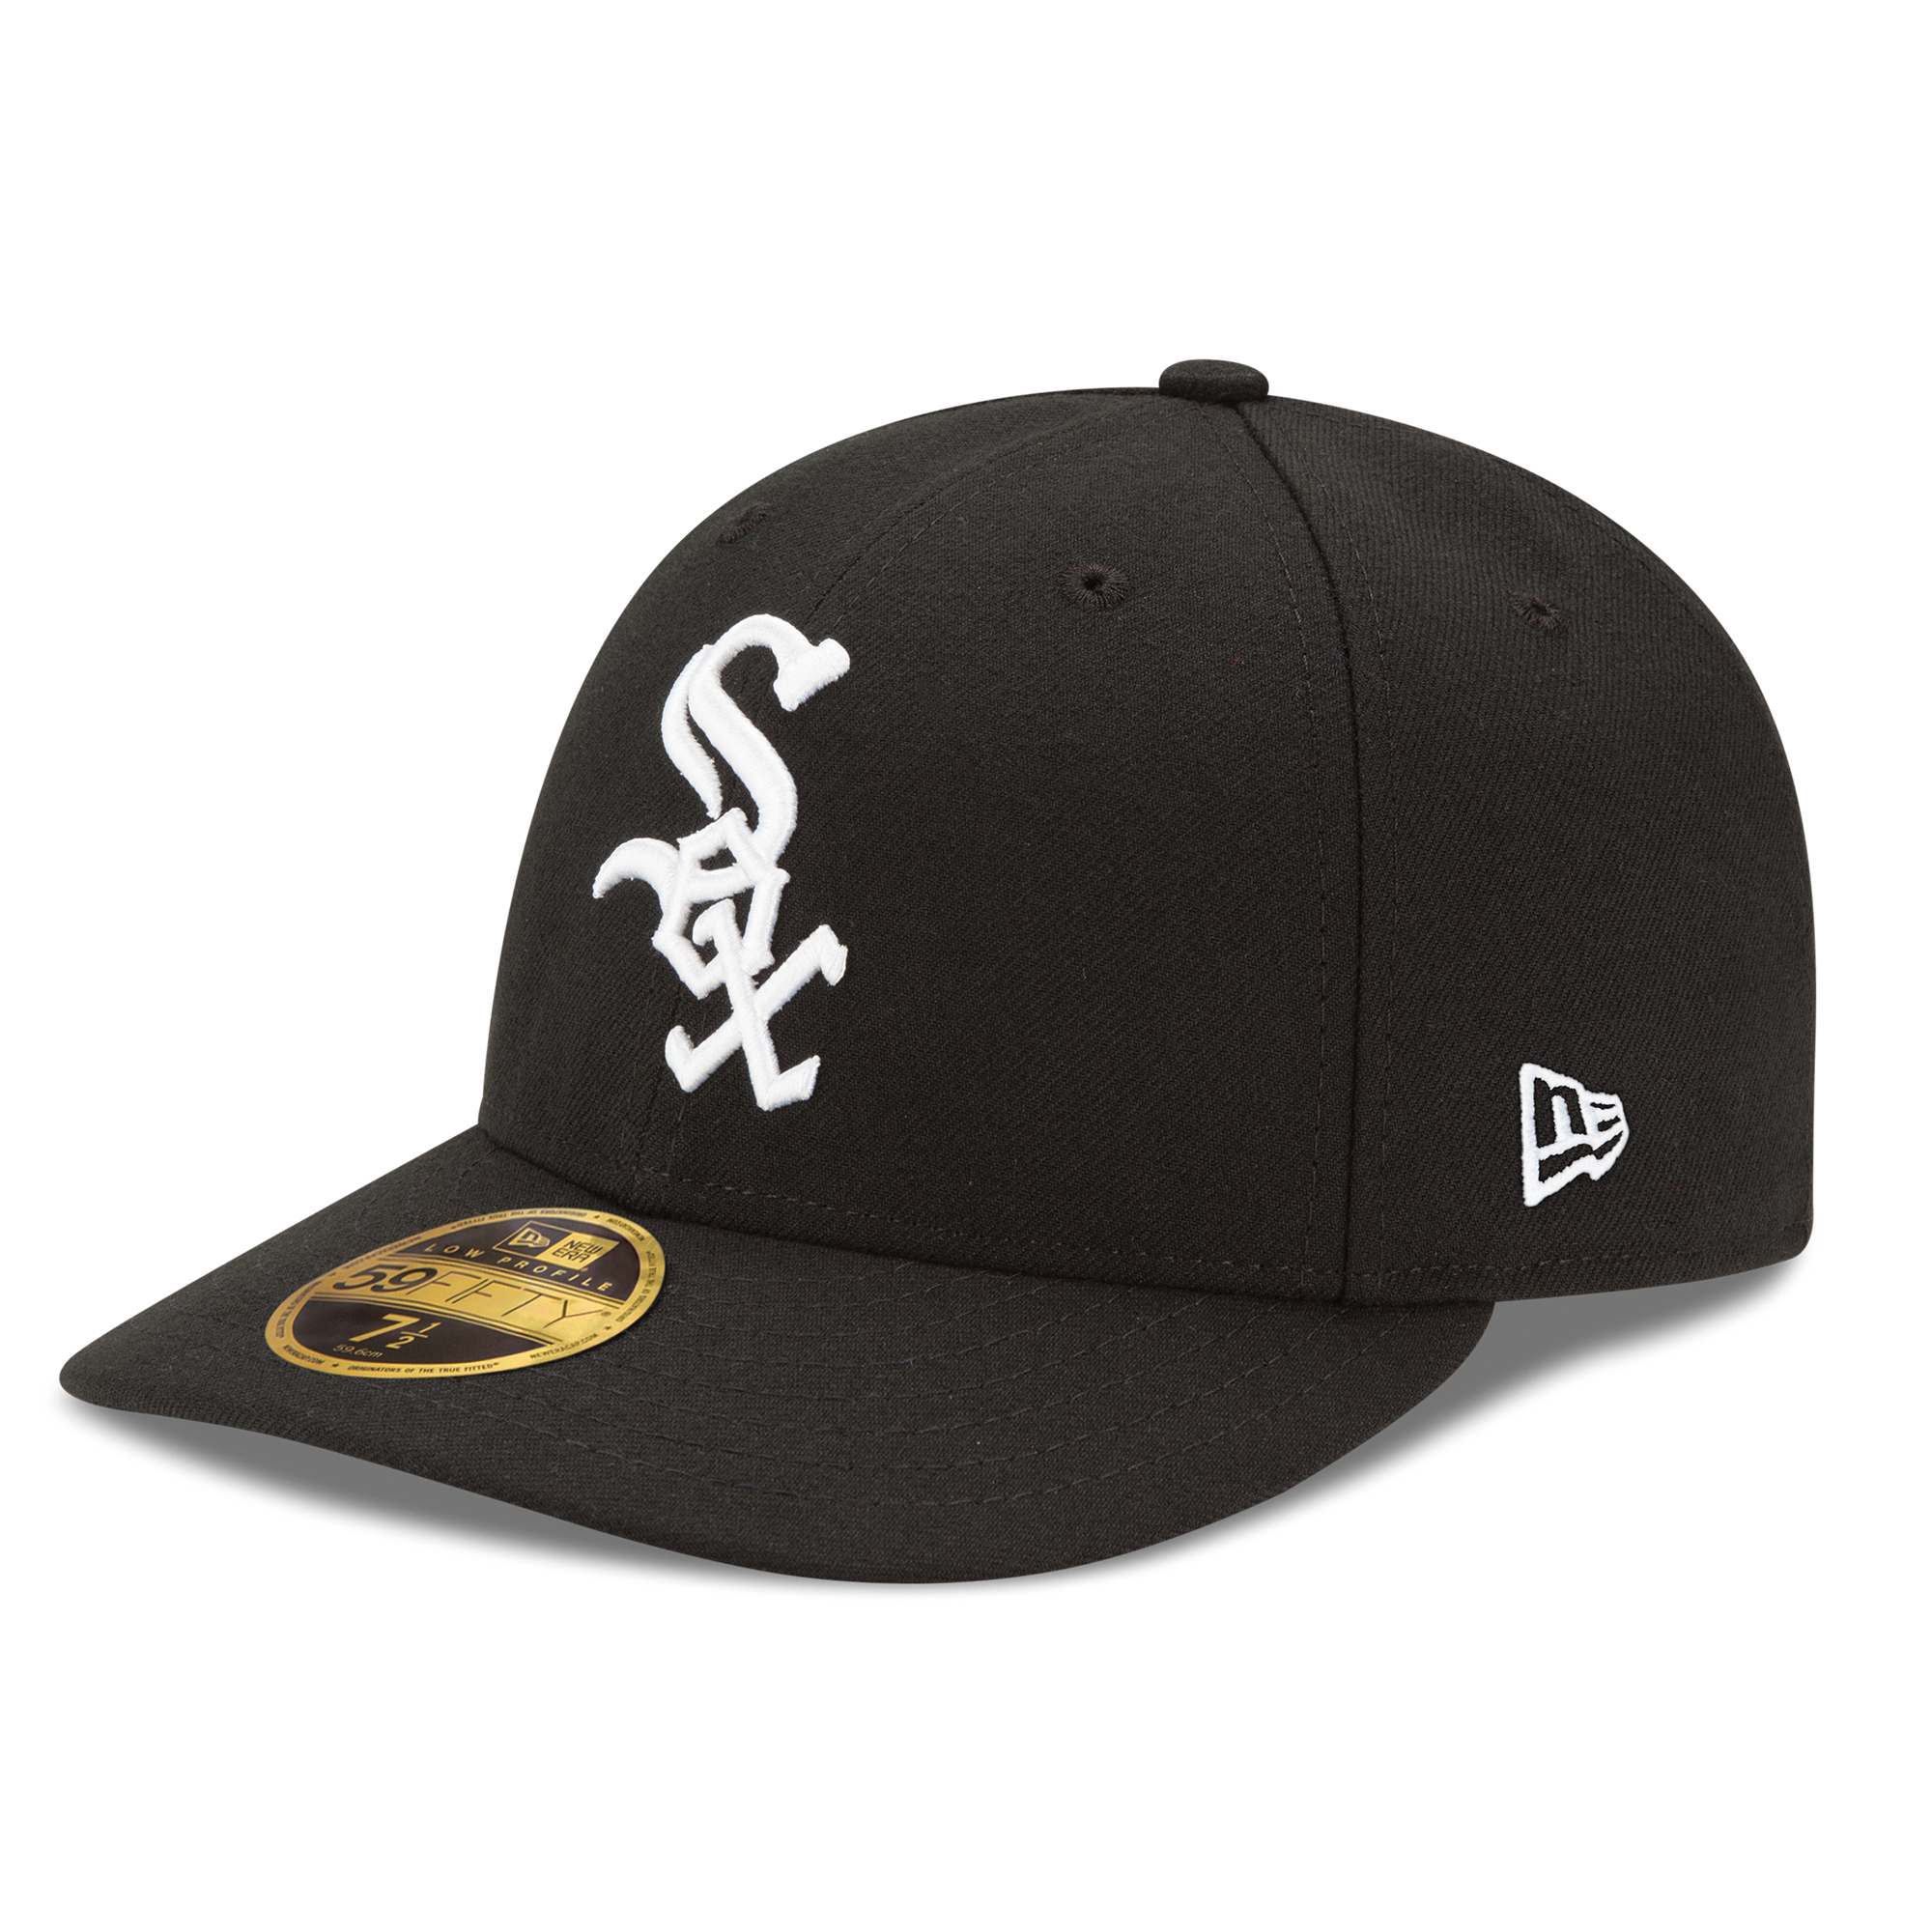 Chicago White Sox New Era Authentic Collection On Field Low Profile Game 59FIFTY Fitted Hat - Black